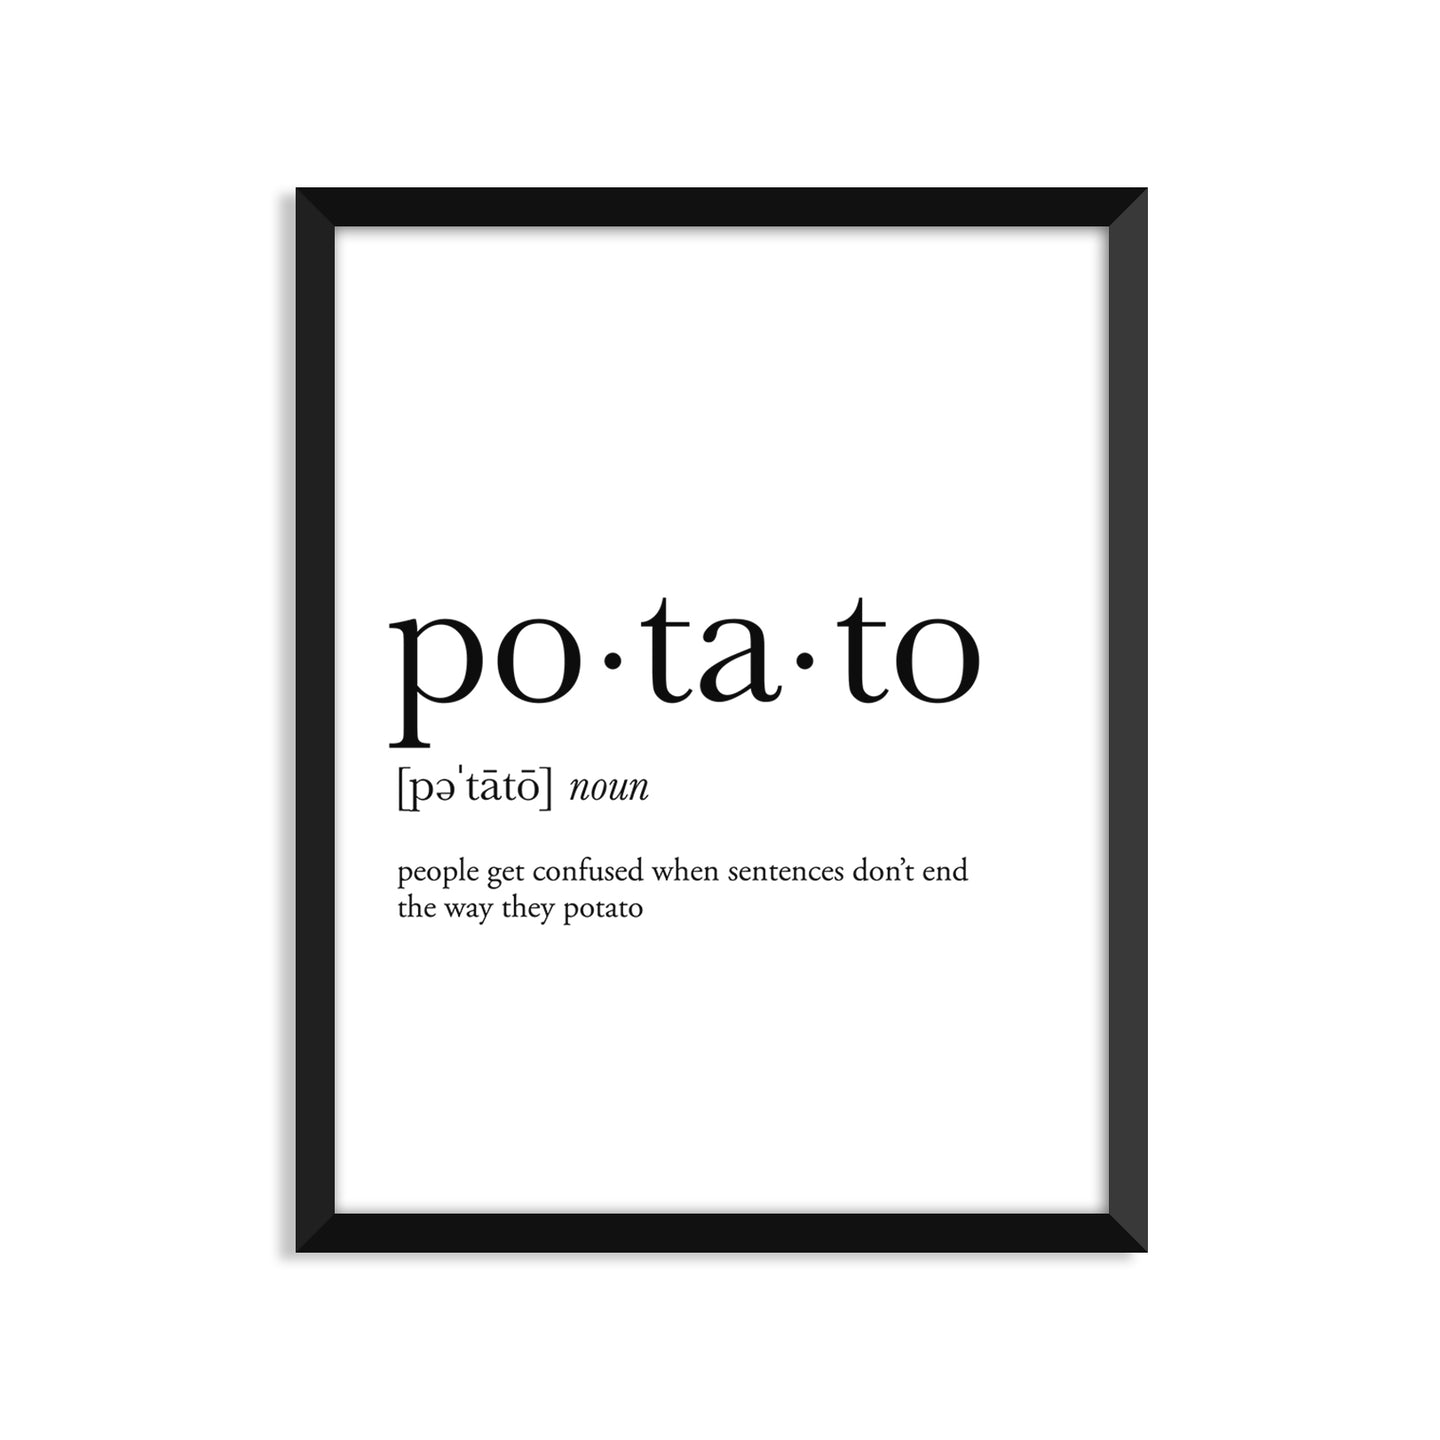 Potato Definition - Unframed Art Print Or Greeting Card